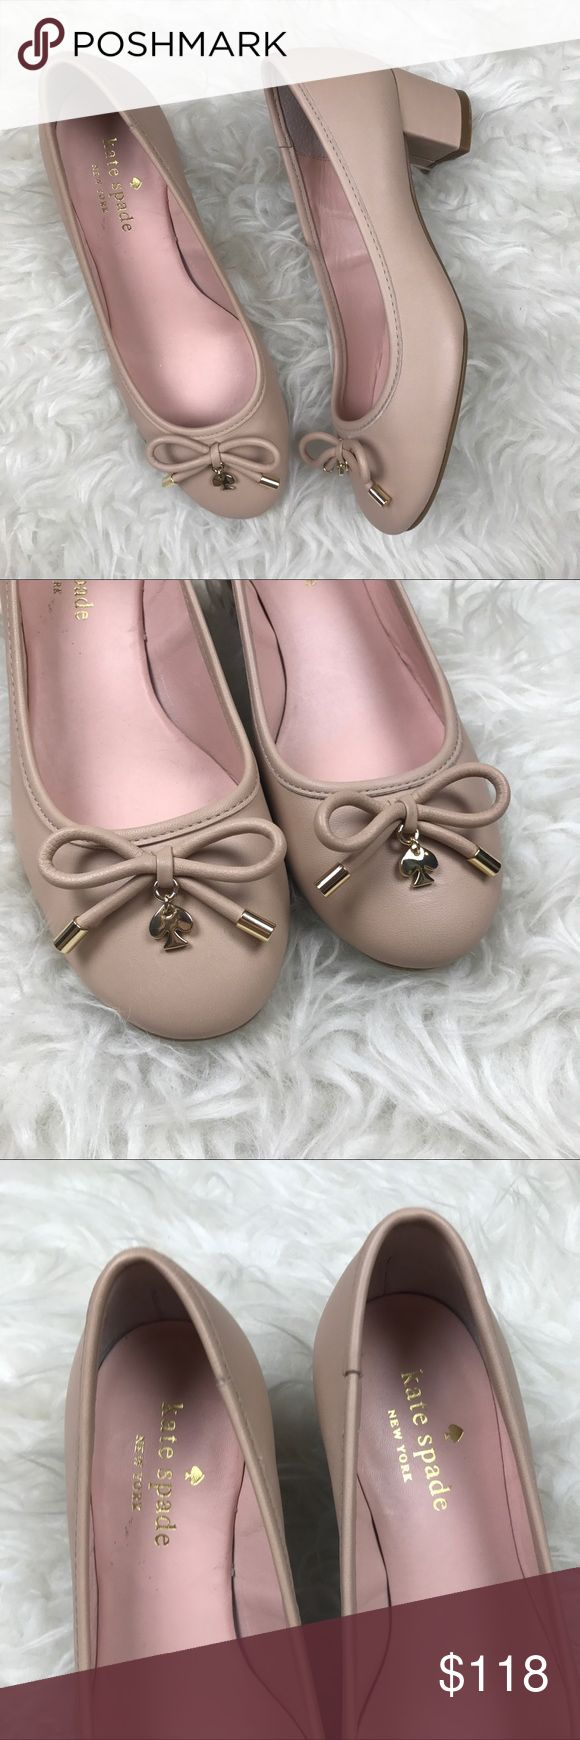 "Kate Spade Nude Ballet Pump Excellent, like new condition Kate Spade Nude Ballet Pump. Size 5.5, Block Heel is 1.5"". Rounded toe, sweet bow with Spade charm. Left shoe has tiny knick on toe. All leather. No trades, offers welcome. No trades, offers welcome. kate spade Shoes Heels"